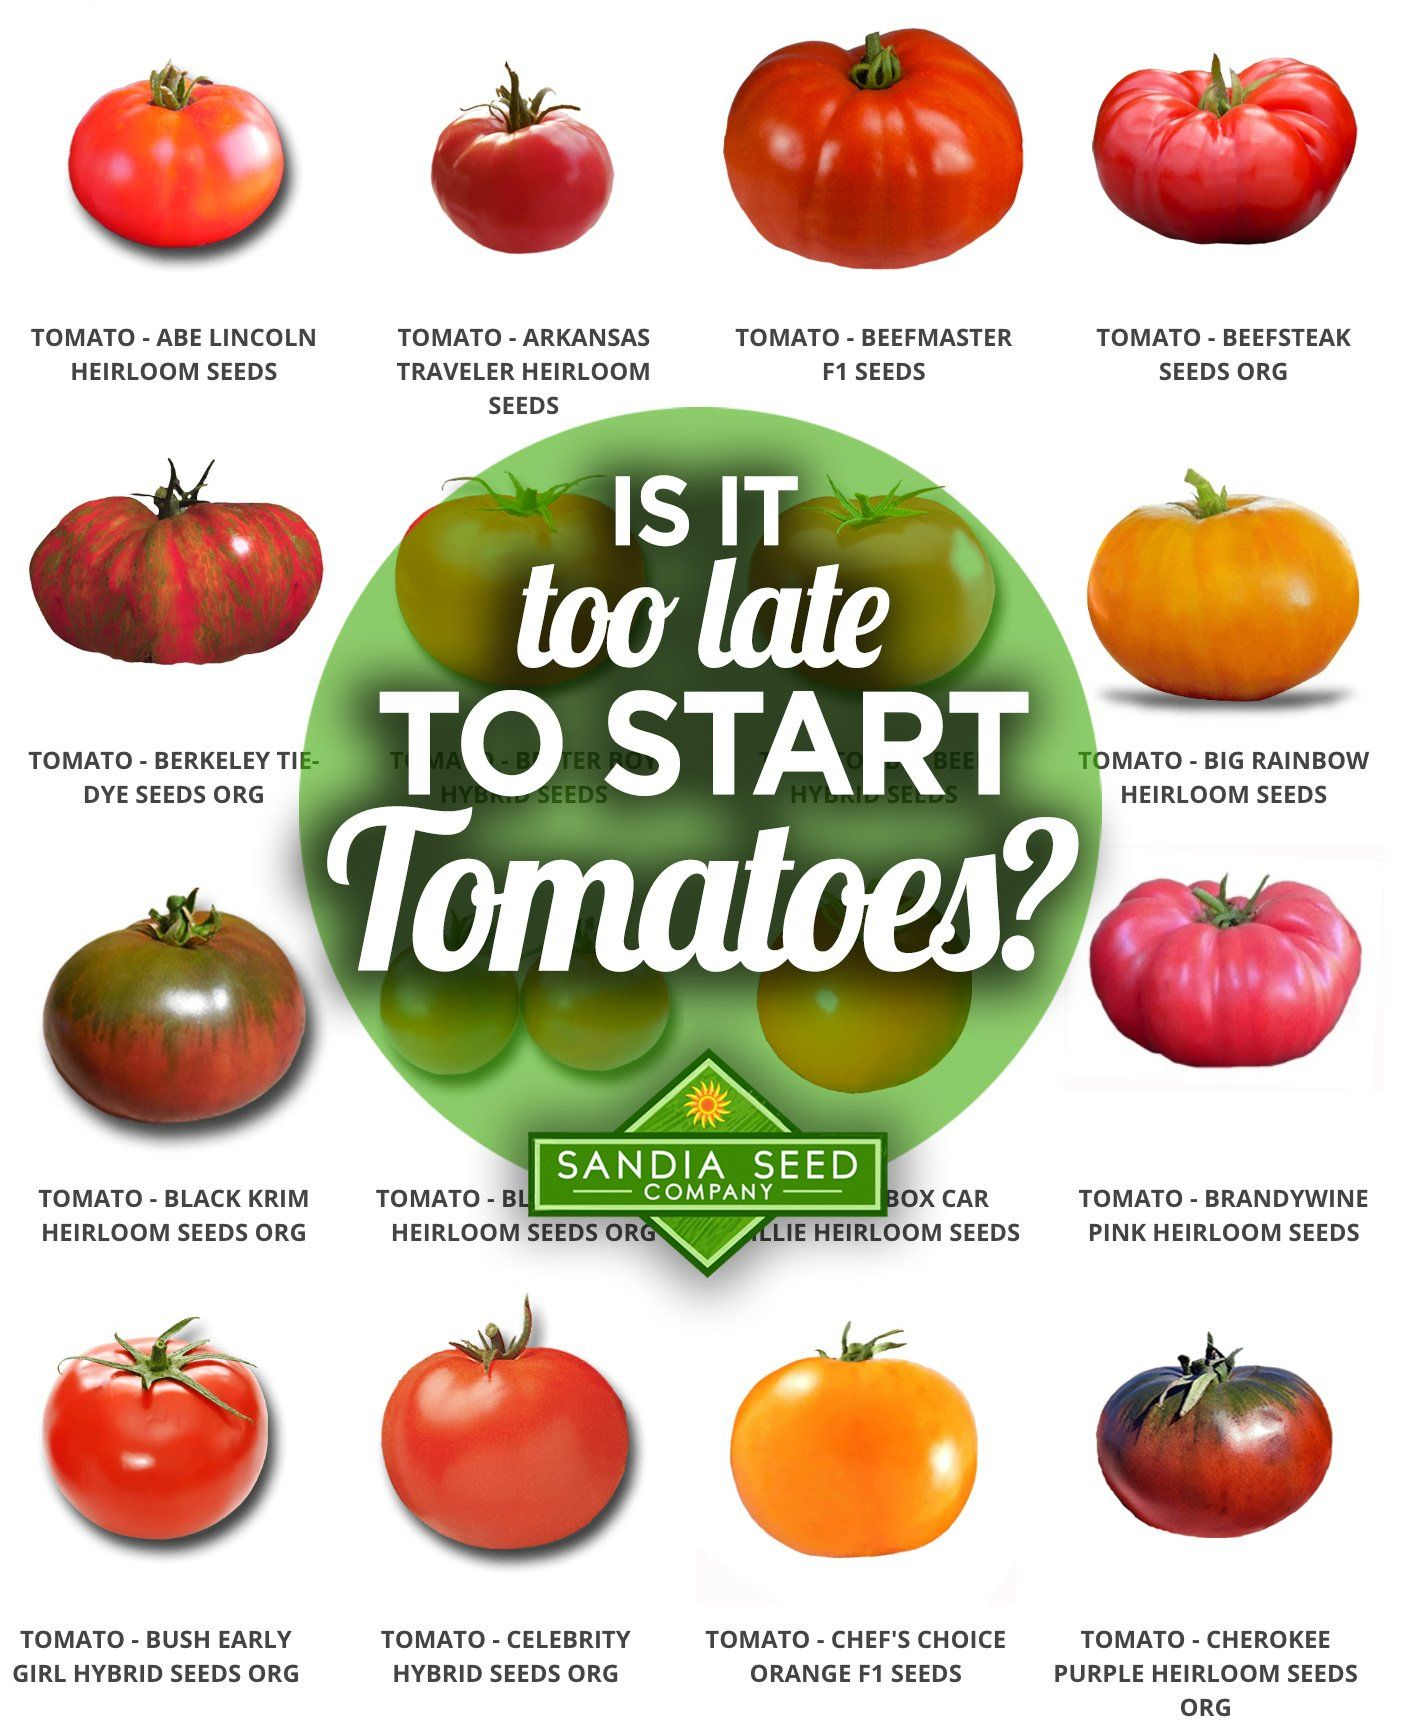 Definitely Not You Can Plant Tomato Seeds Anytime In The Spring